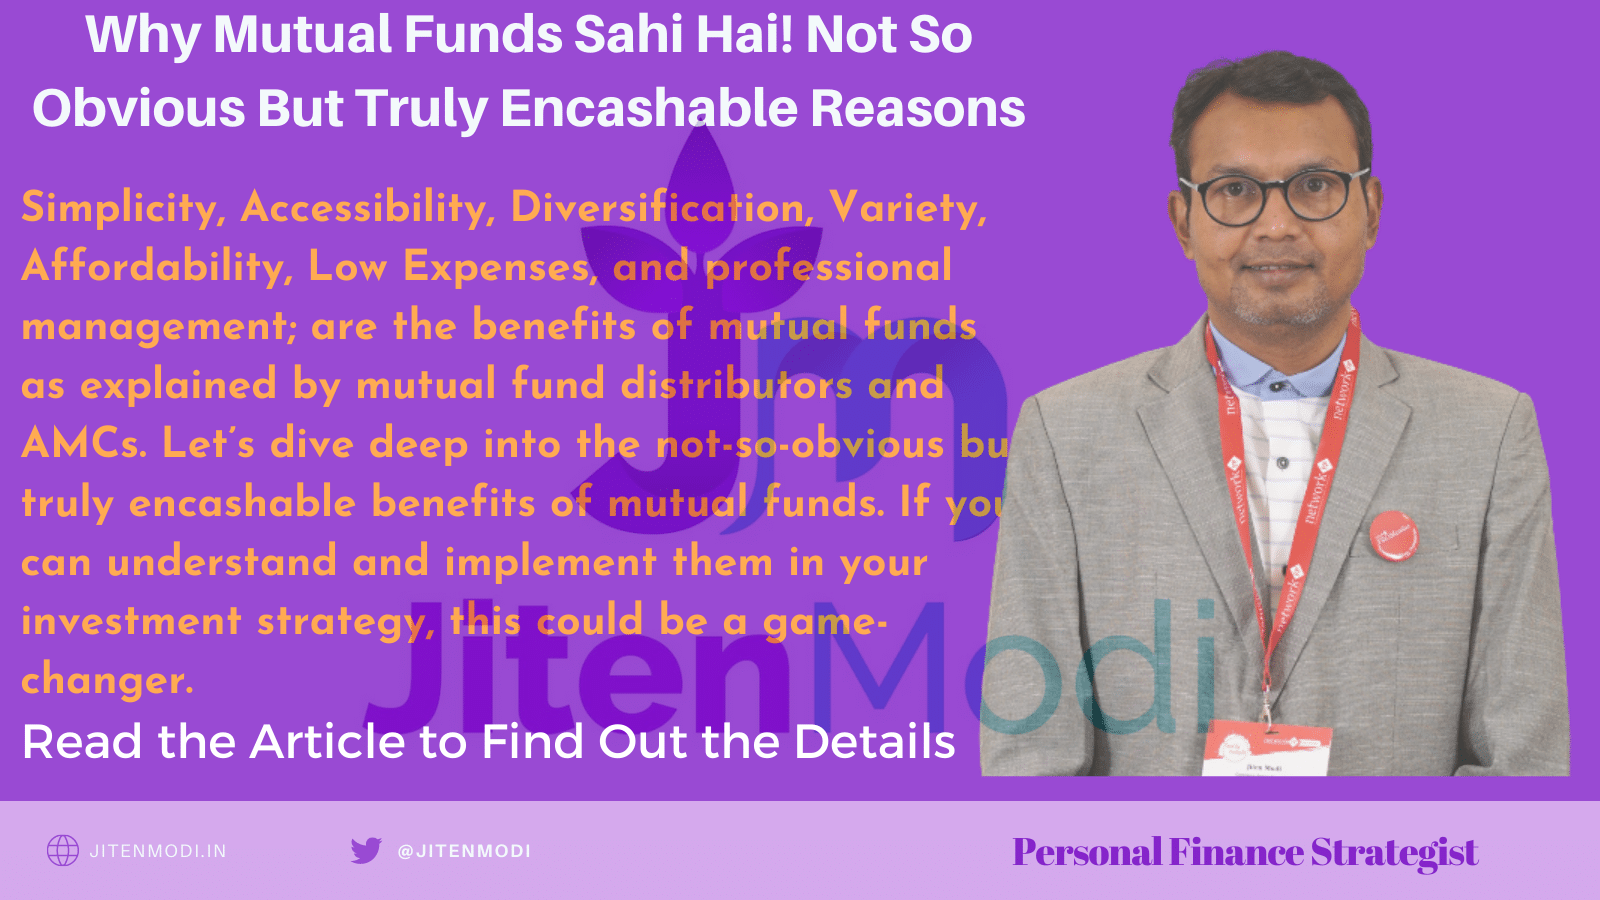 Why Mutual Funds Sahi Hai! Not So Obvious But Truly Encashable Reasons